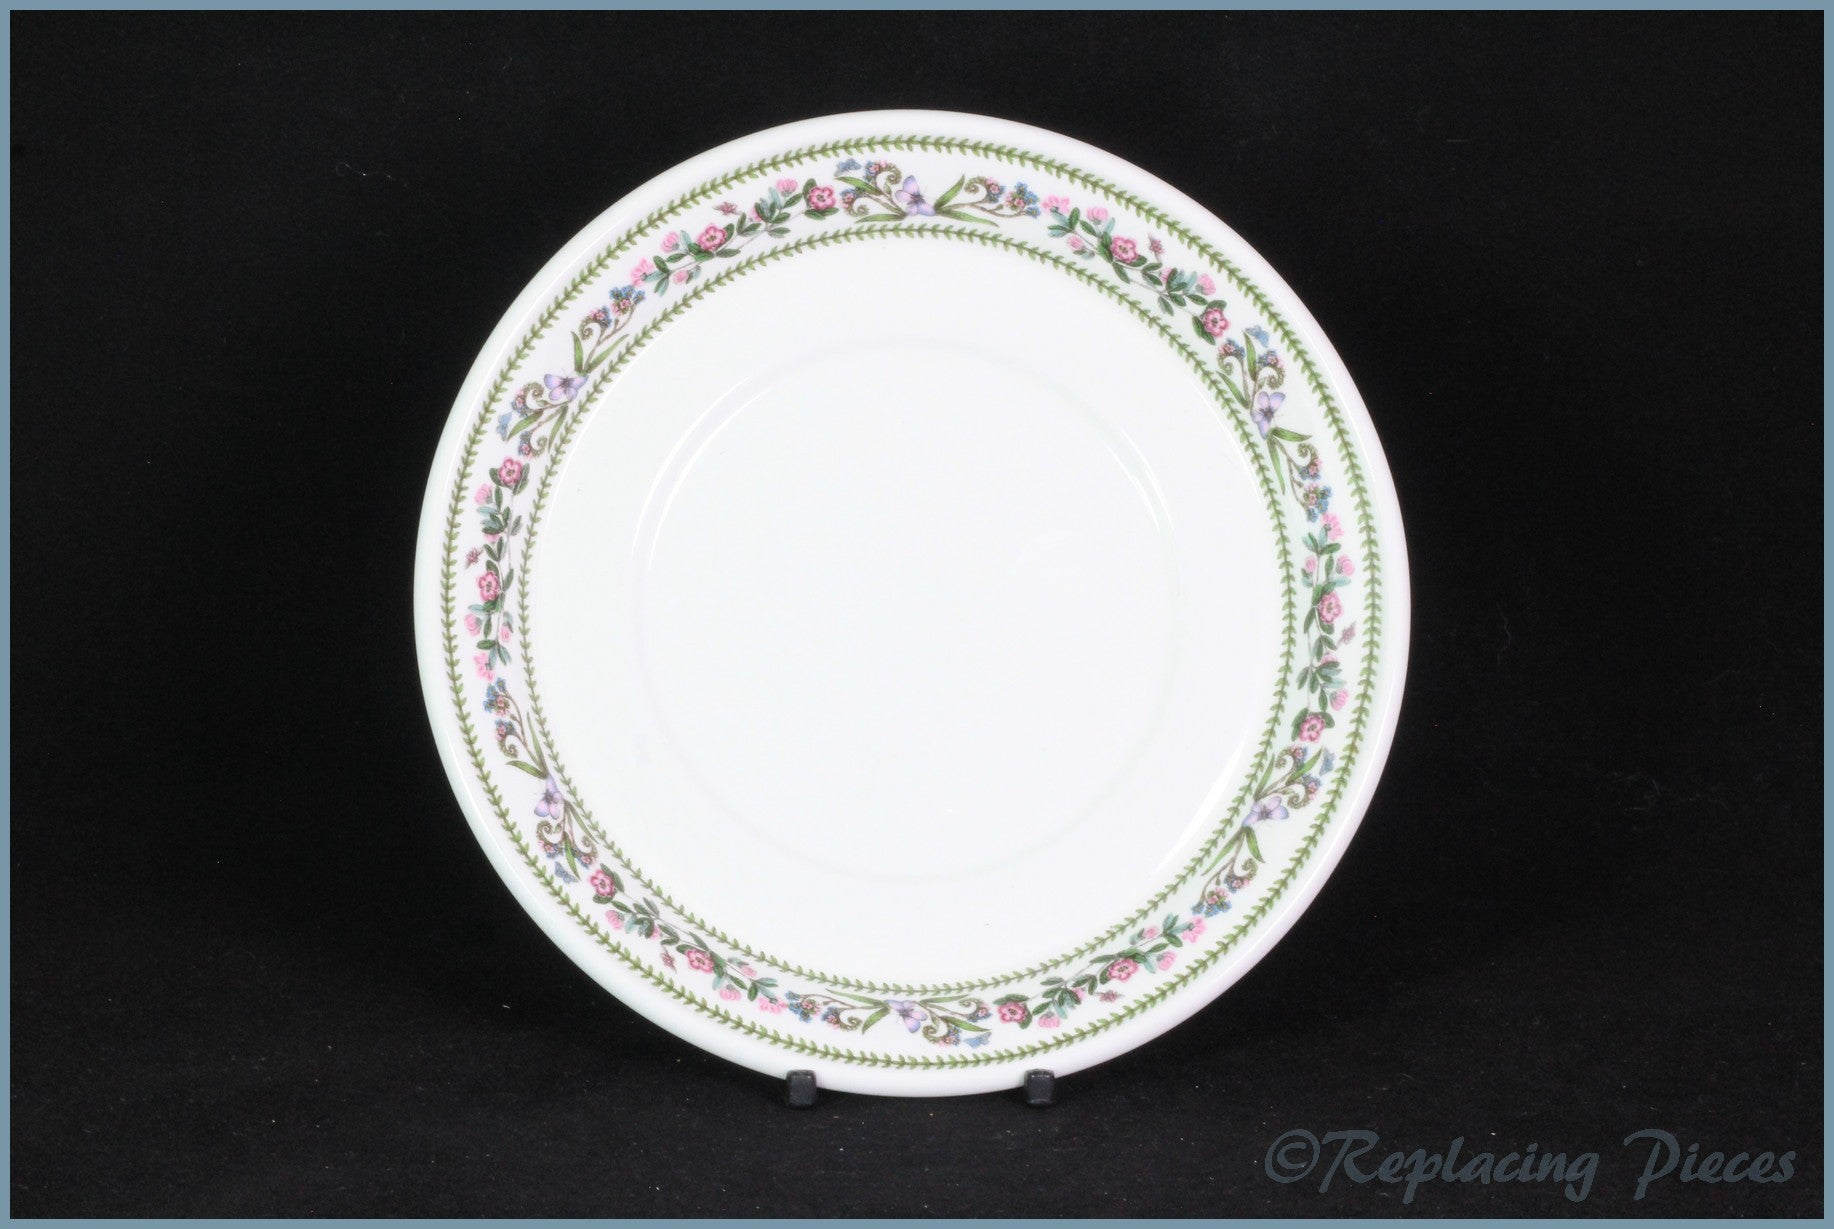 Portmeirion - Variations - Breakfast Saucer